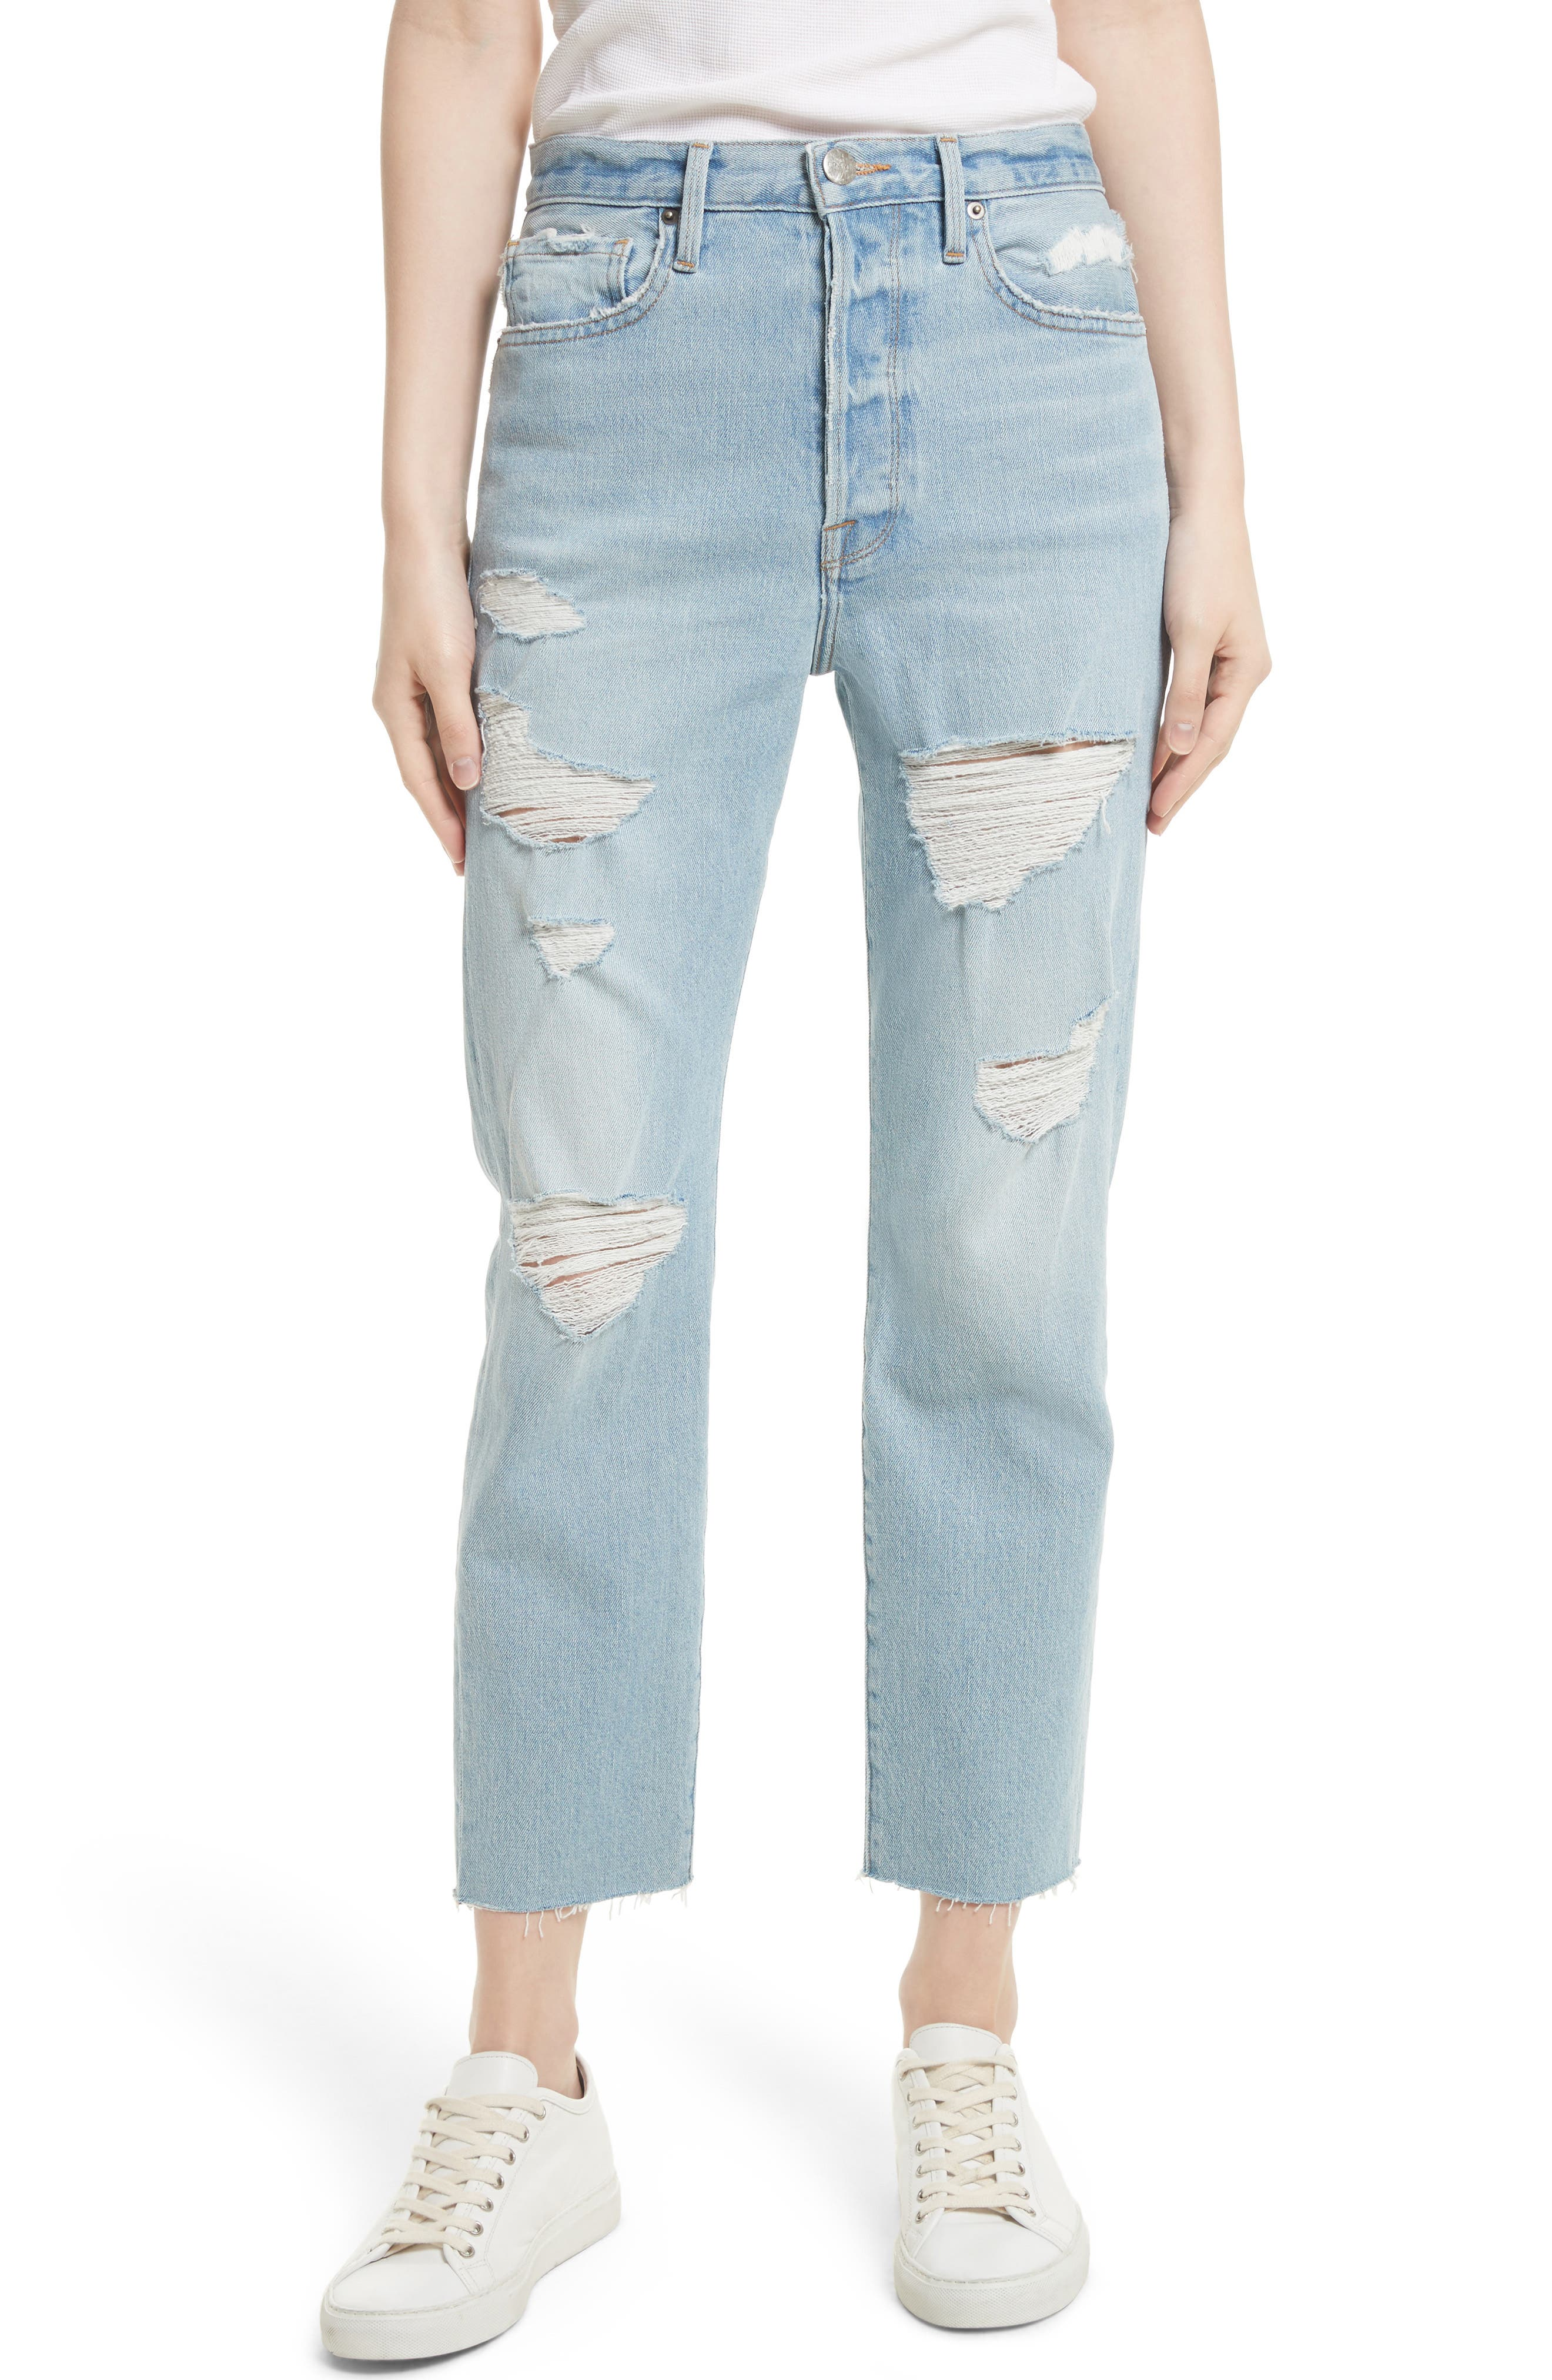 Le Original Raw Edge High Waist Jeans,                             Main thumbnail 1, color,                             450